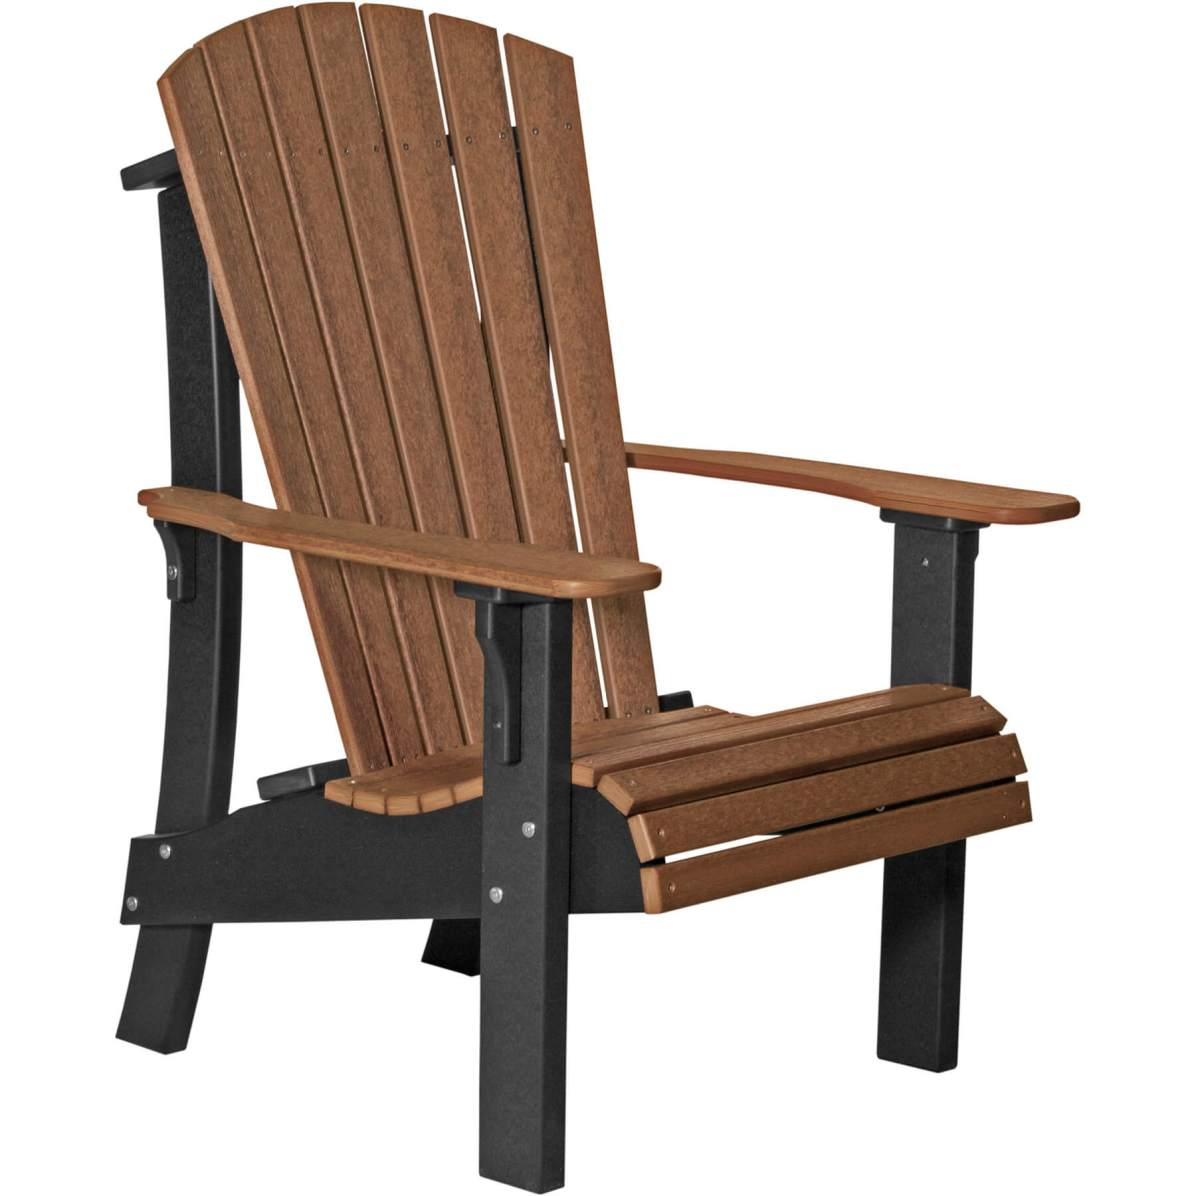 RACAMB Royal Adirondack Chair (Antique Mahogany & Black)